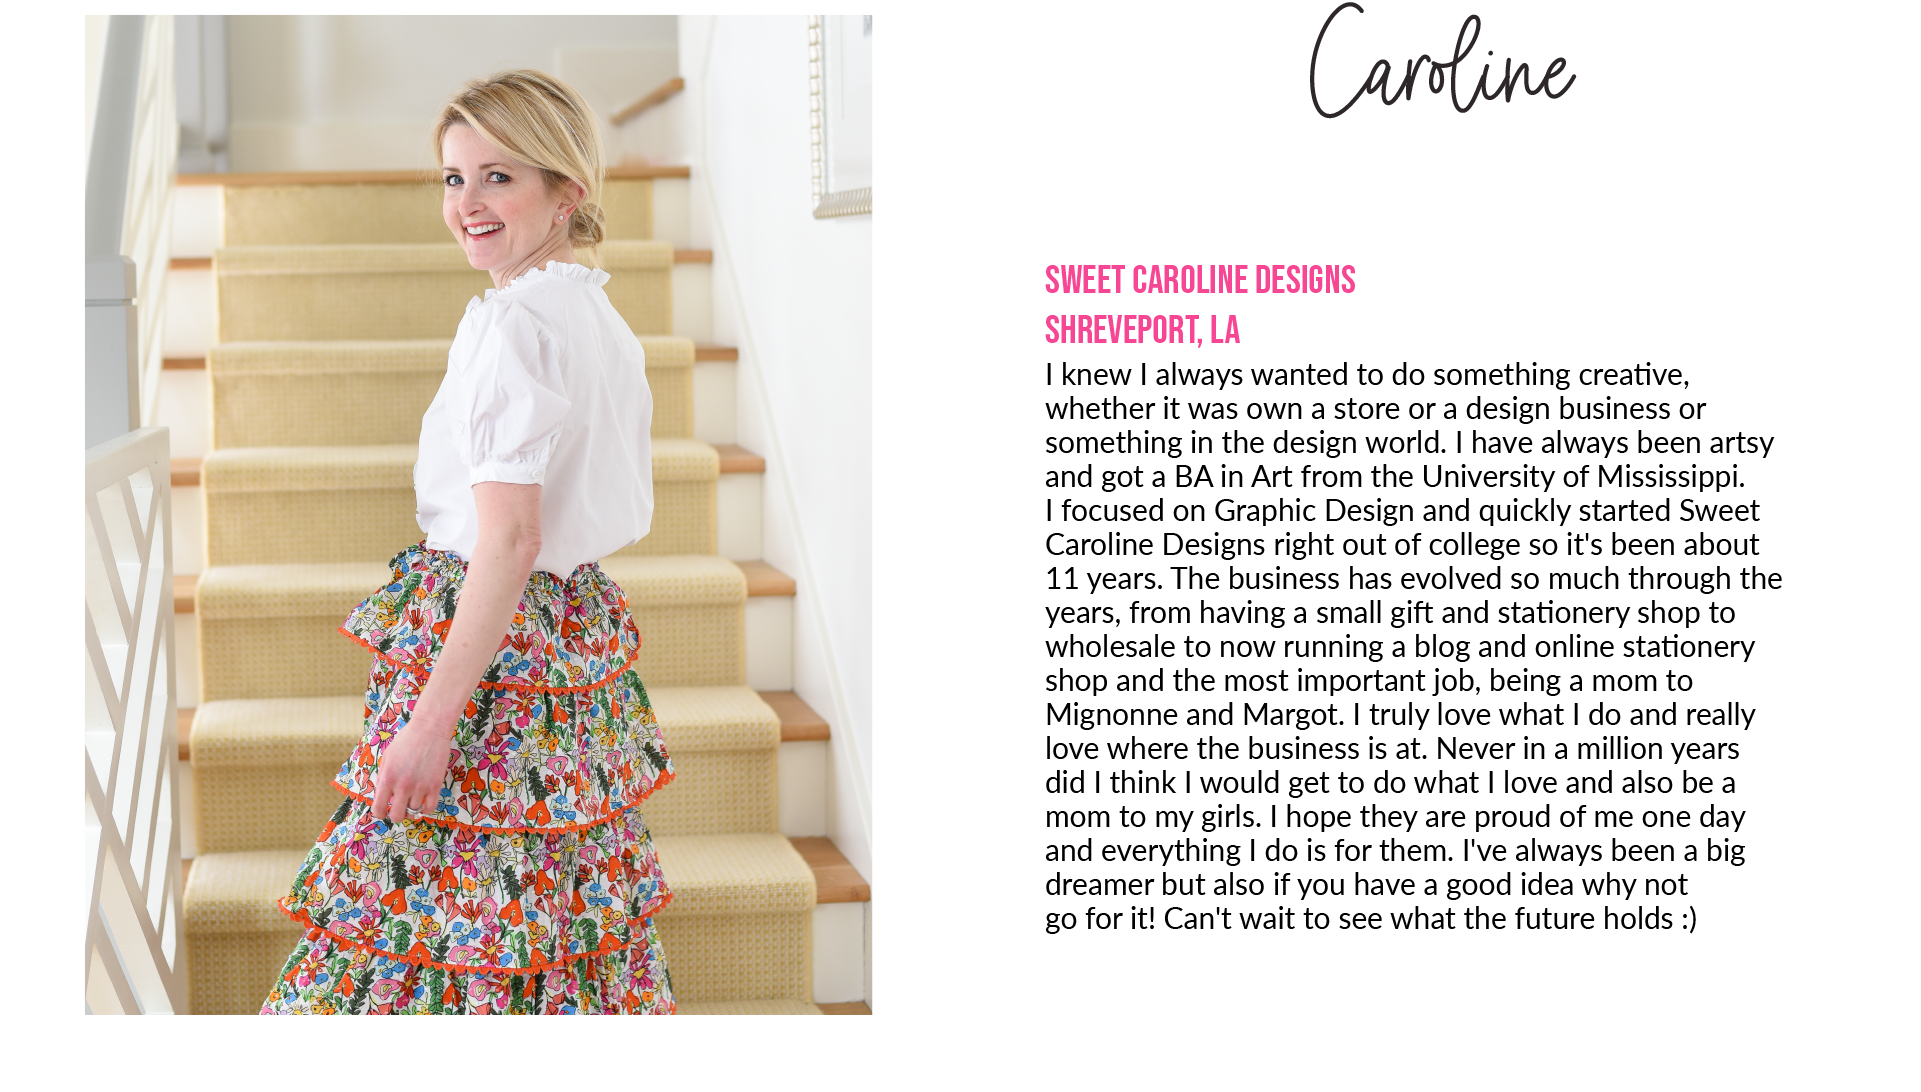 CarolineSweet Caroline DesignsShreveport, LA I knew I always wanted to do something creative,whether it was own a store or a design business or something in the design world. I have always been artsyand got a BA in Art from the University of Mississippi.I focused on Graphic Design and quickly started Sweet Caroline Designs right out of college so it's been about11 years. The business has evolved so much through the years, from having a small gift and stationery shop to wholesale to now running a blog and online stationeryshop and the most important job, being a mom toMignonne and Margot. I truly love what I do and reallylove where the business is at. Never in a million yearsdid I think I would get to do what I love and also be amom to my girls. I hope they are proud of me one dayand everything I do is for them. I've always been a big dreamer but also if you have a good idea why notgo for it! Can't wait to see what the future holds :)